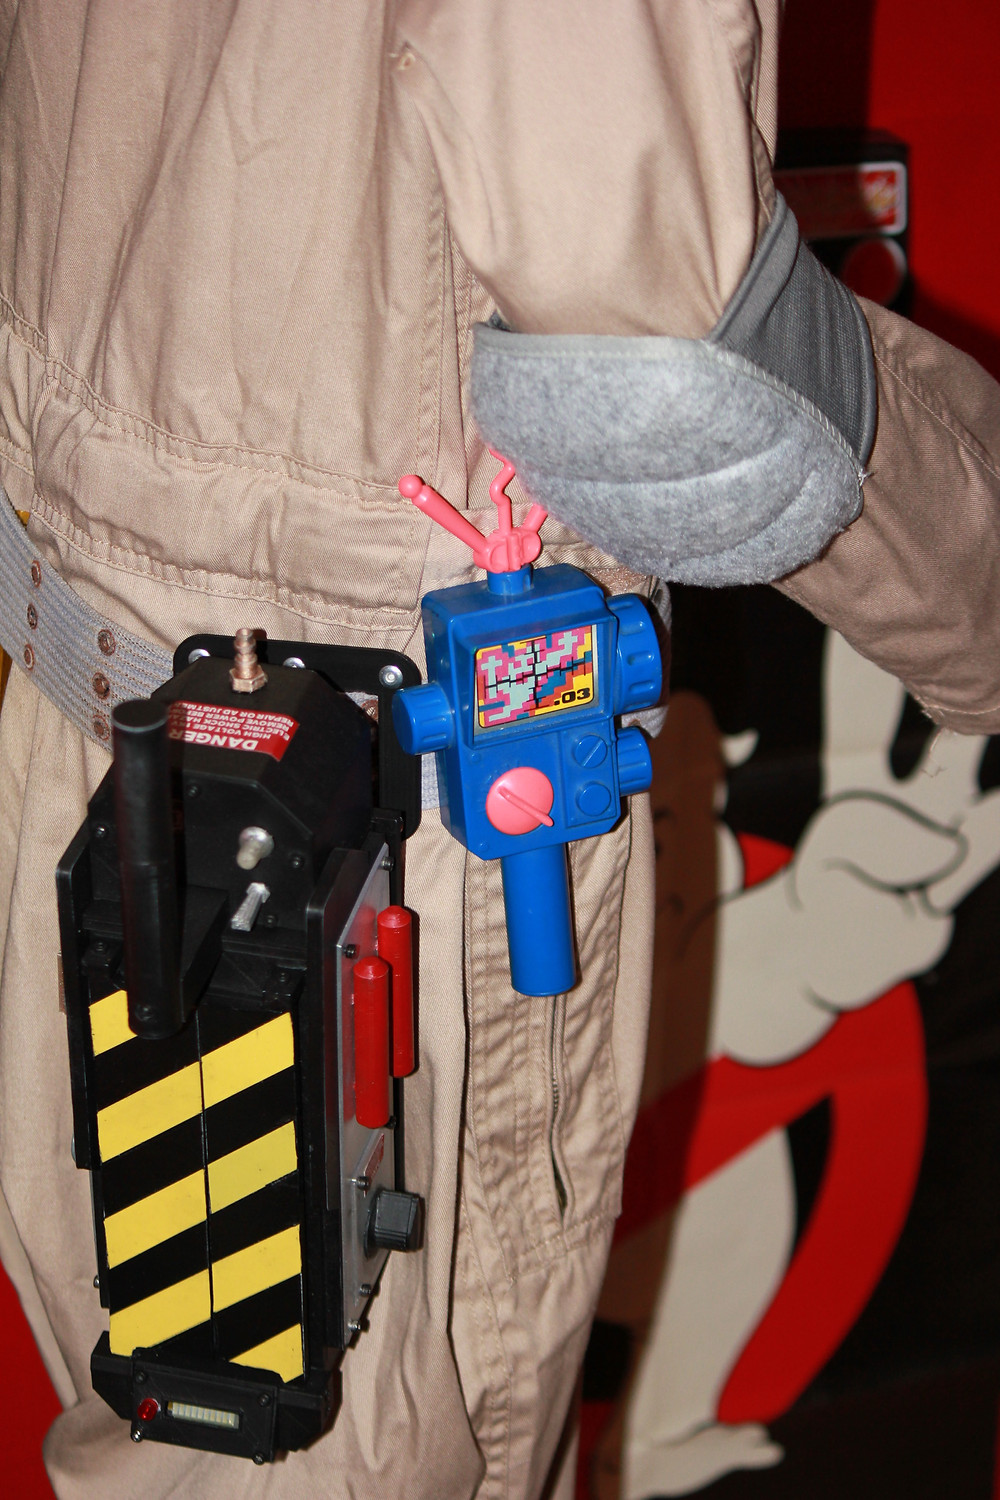 Kenner The Real Ghostbusters PKE meter with 3D printed ghost trap.